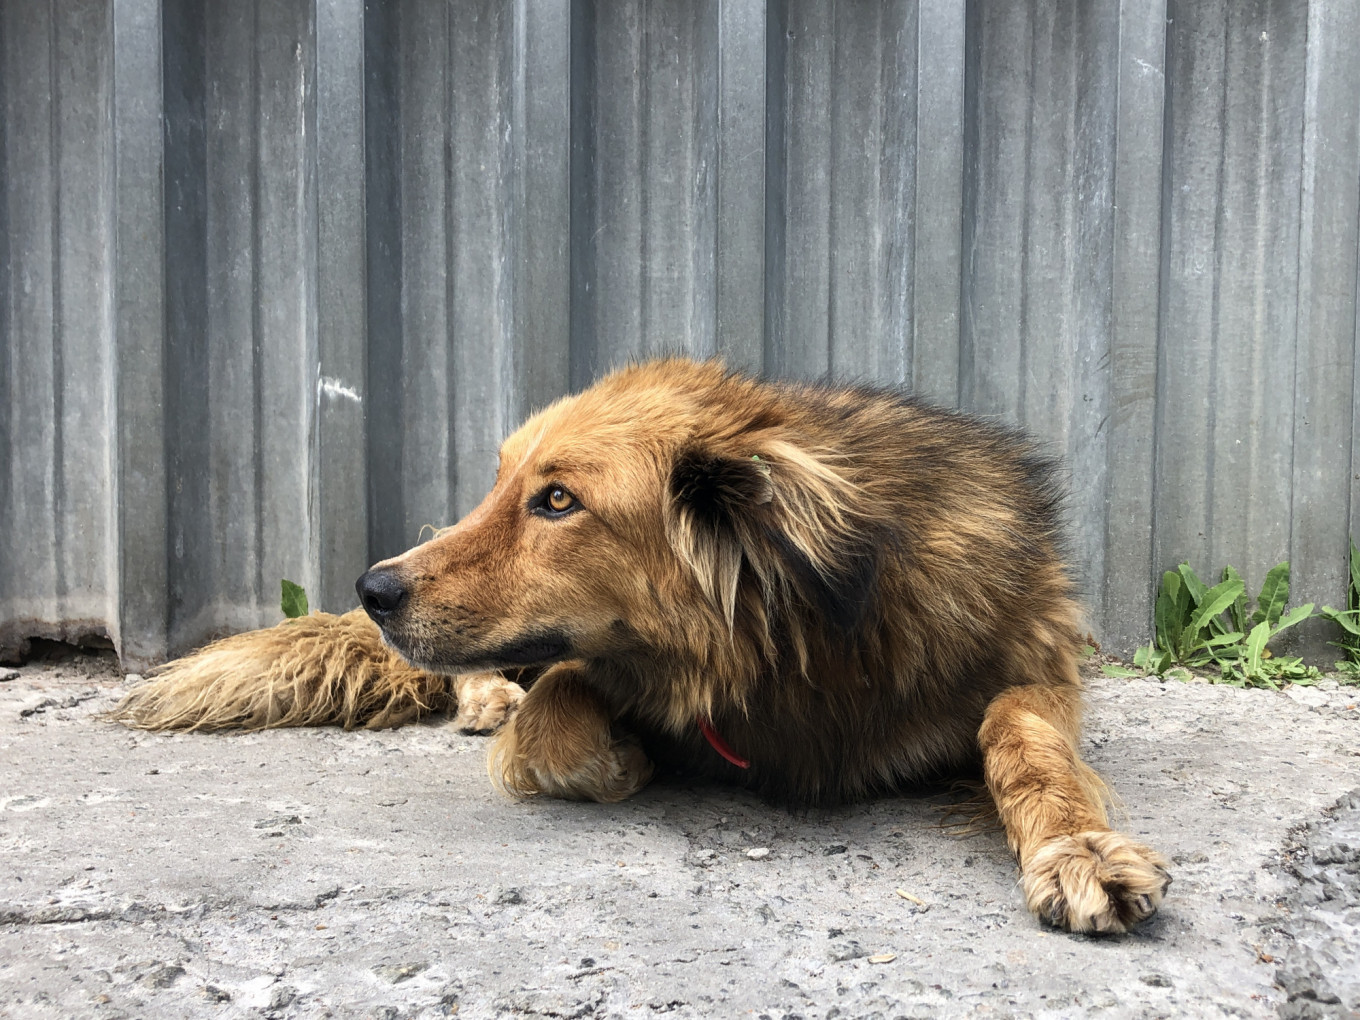 With winter temperatures averaging below freezing, even dogs with long fur are unable to withstand conditions in northern Ukraine if they don't have shelter. SPCA International